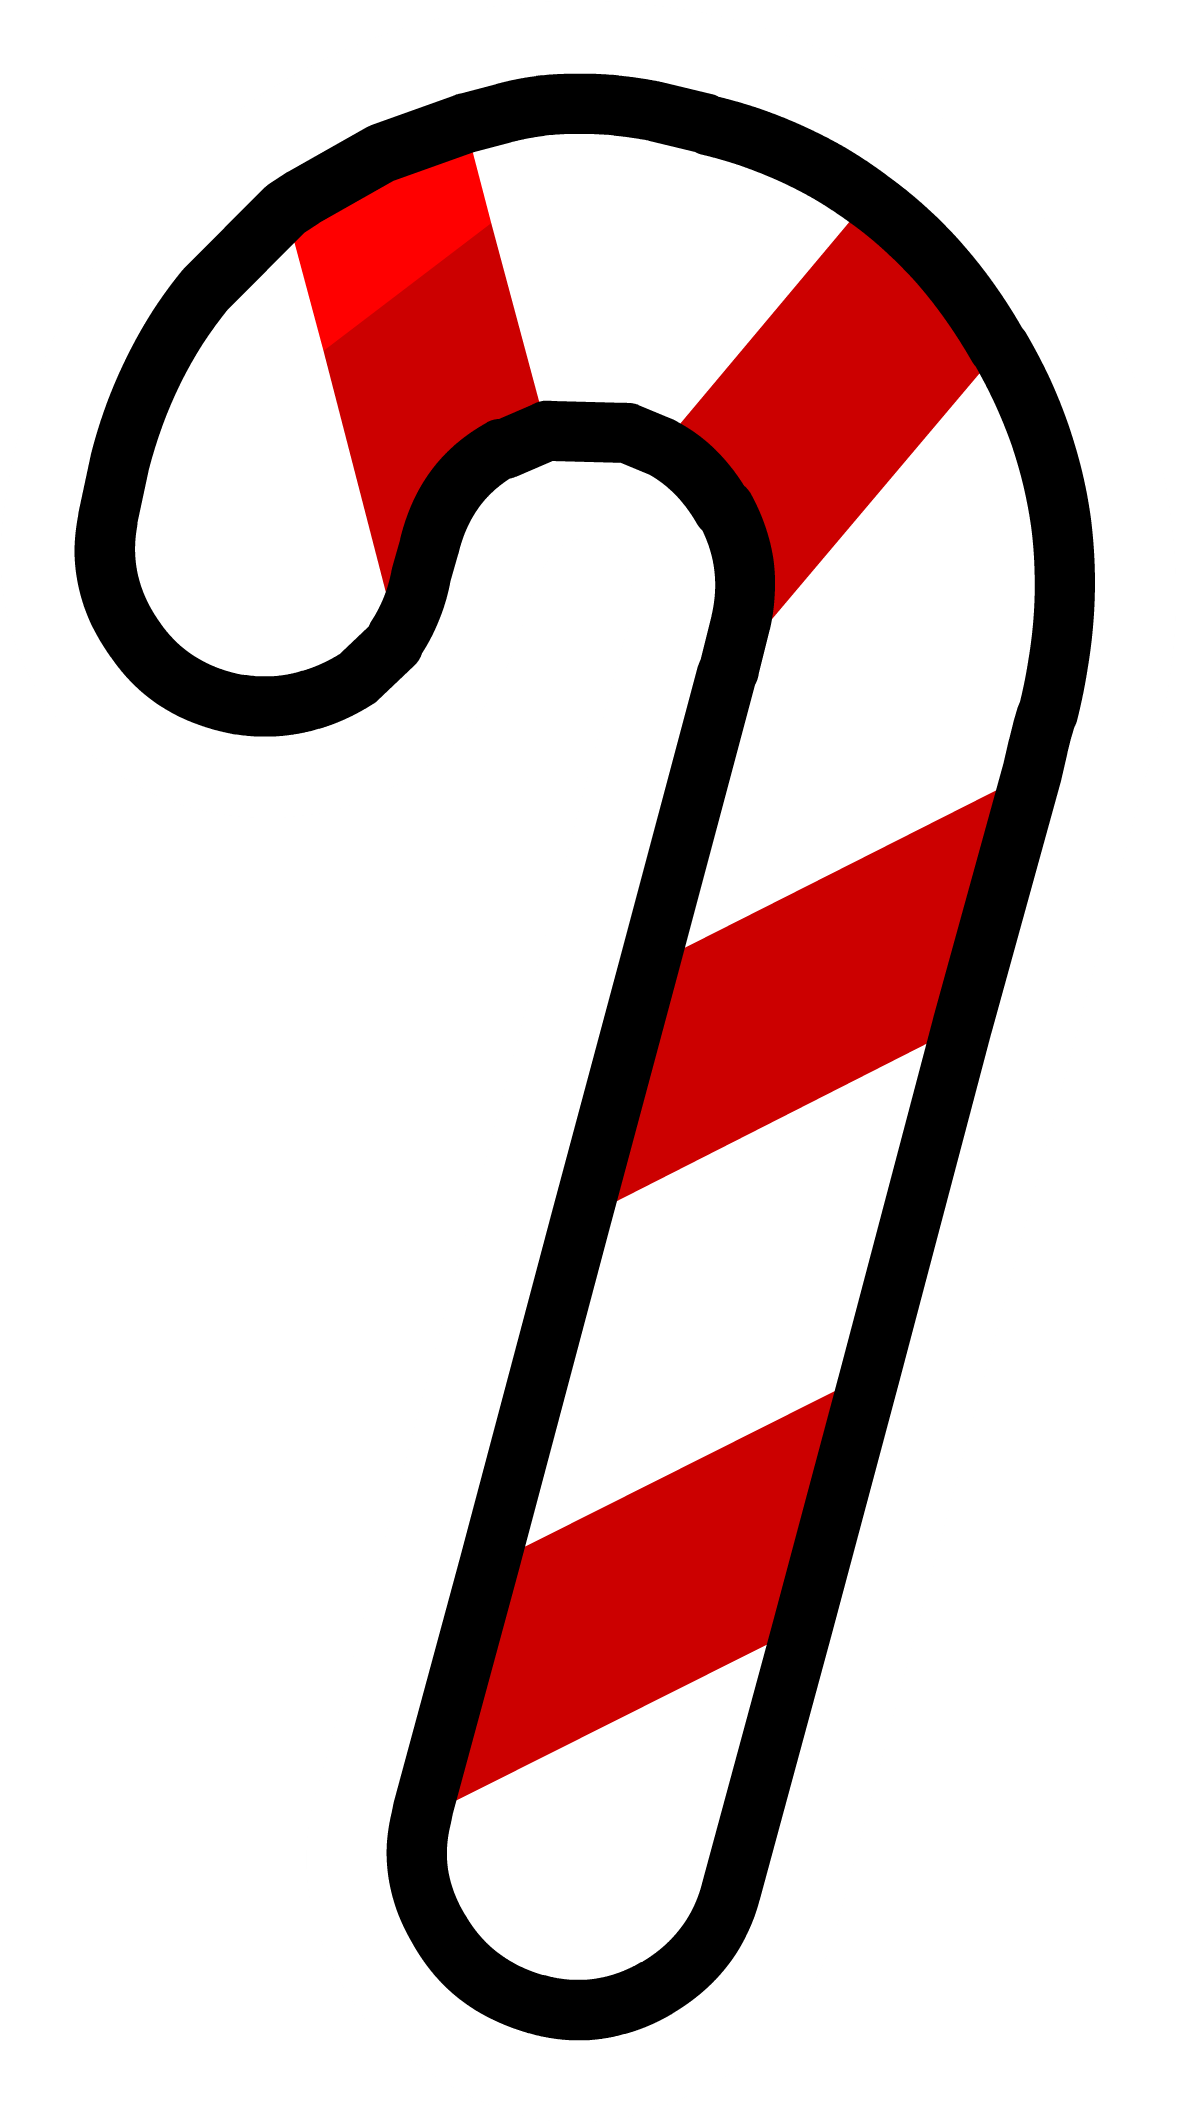 Christmas candy cane clipart black and white library Candy Cane Silhouette at GetDrawings.com | Free for personal use ... black and white library